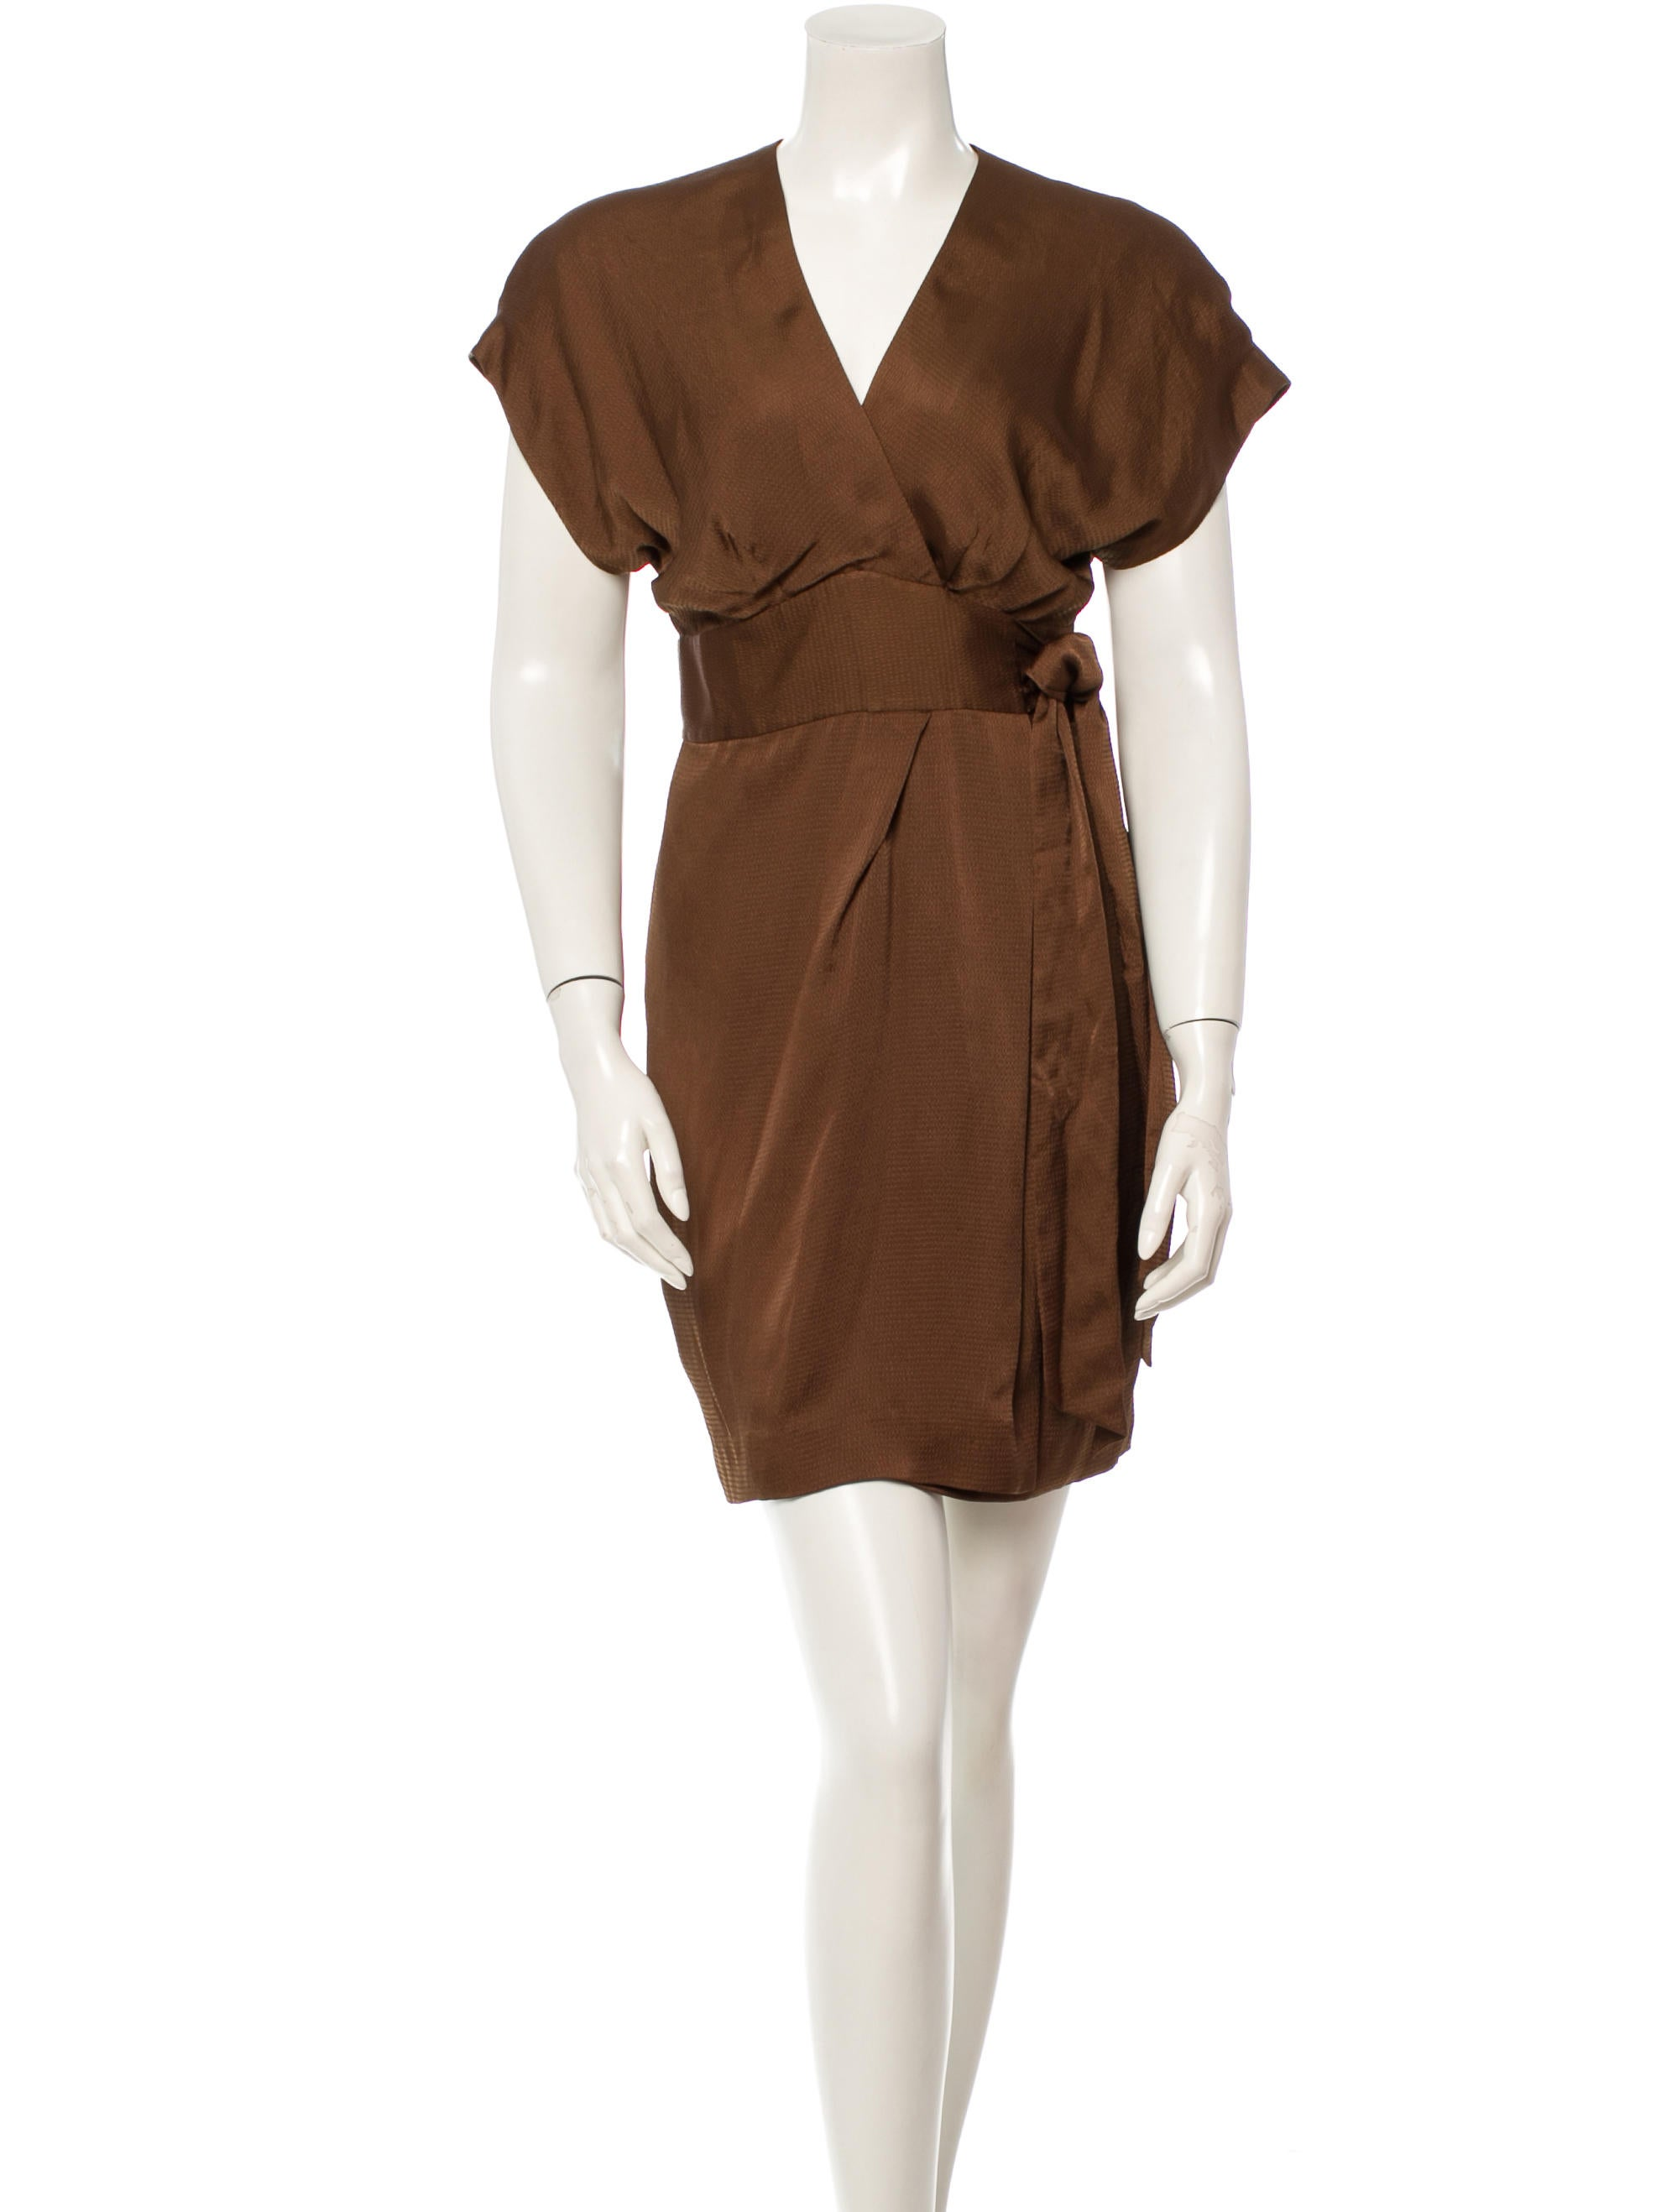 Diane von furstenberg dress dresses wdi42339 the for Diane von furstenberg clothes